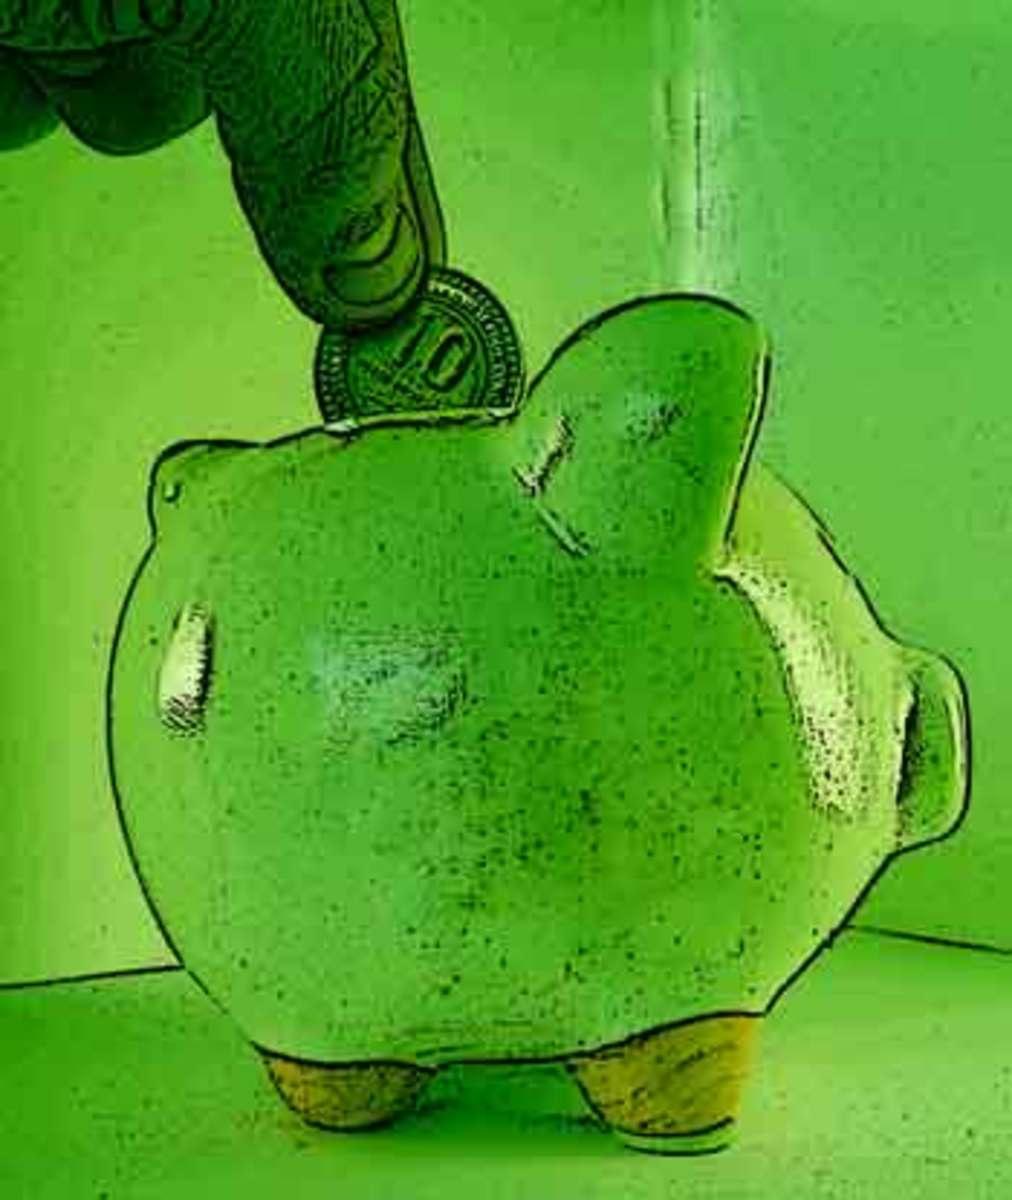 piggy_bank_green1